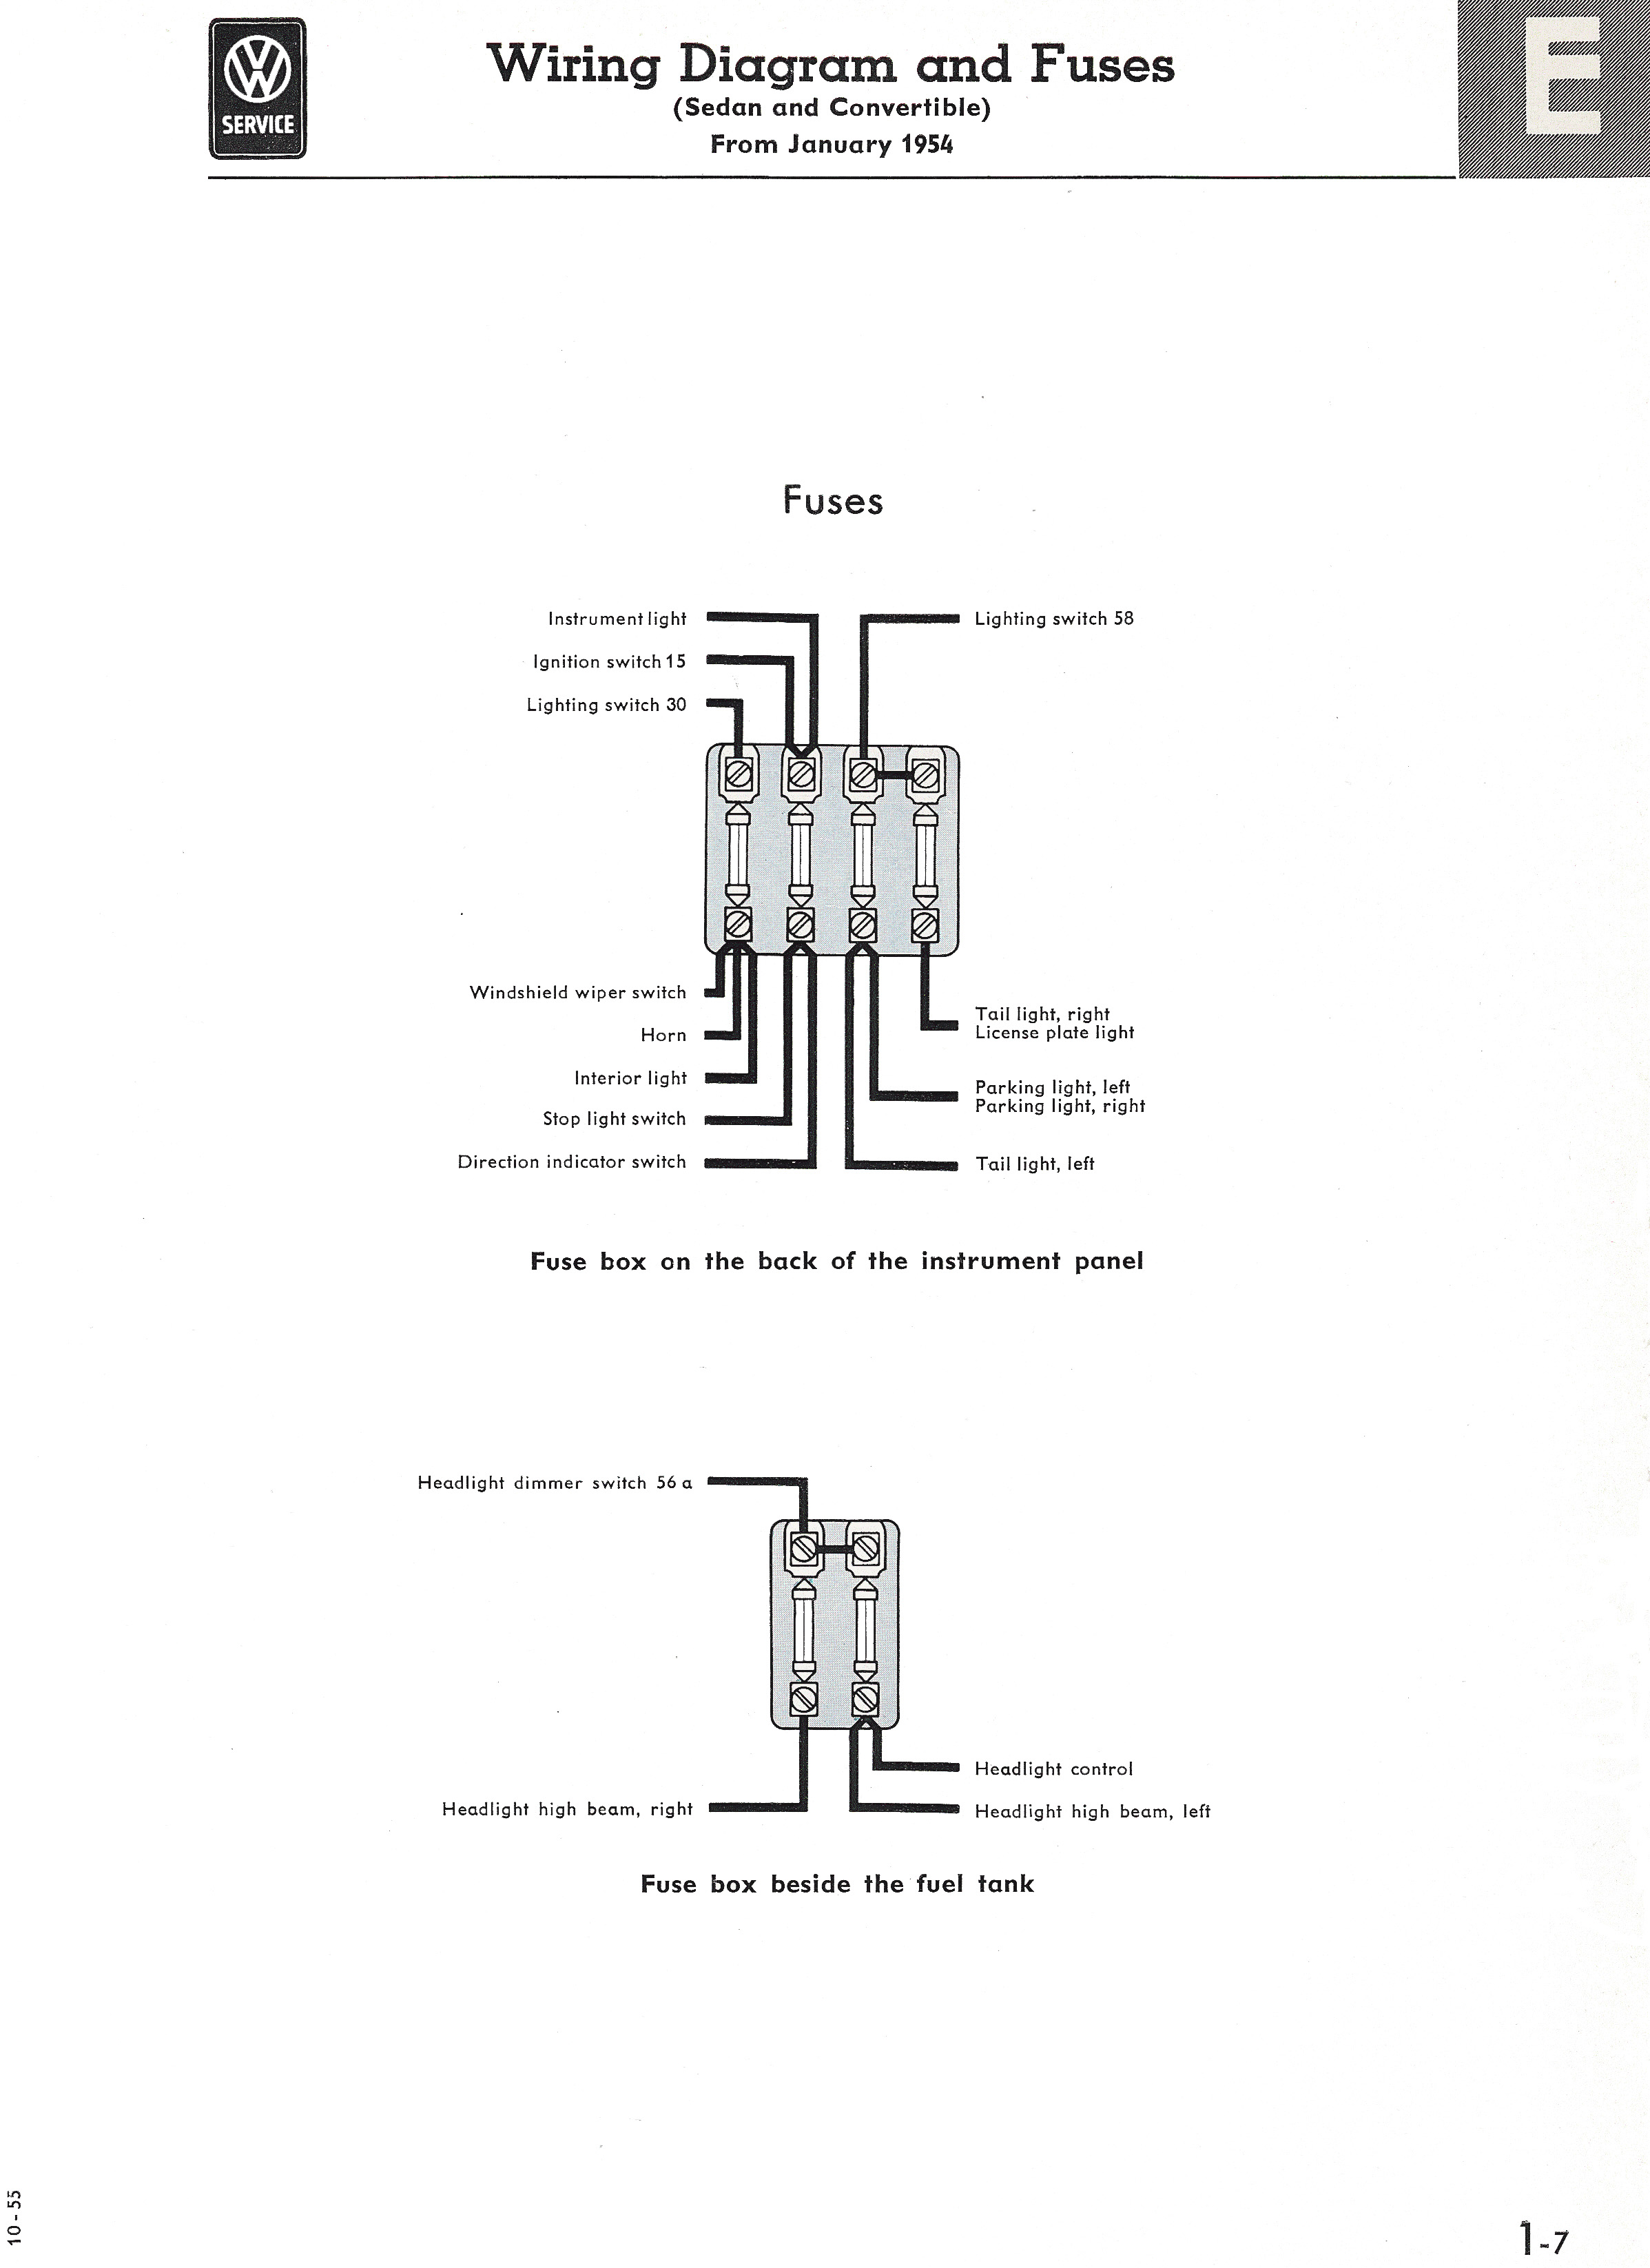 71 Super Beetle Wiring Diagram Reinvent Your 2001 Vw Thesamba Com Type 1 Diagrams Rh 1971 1976